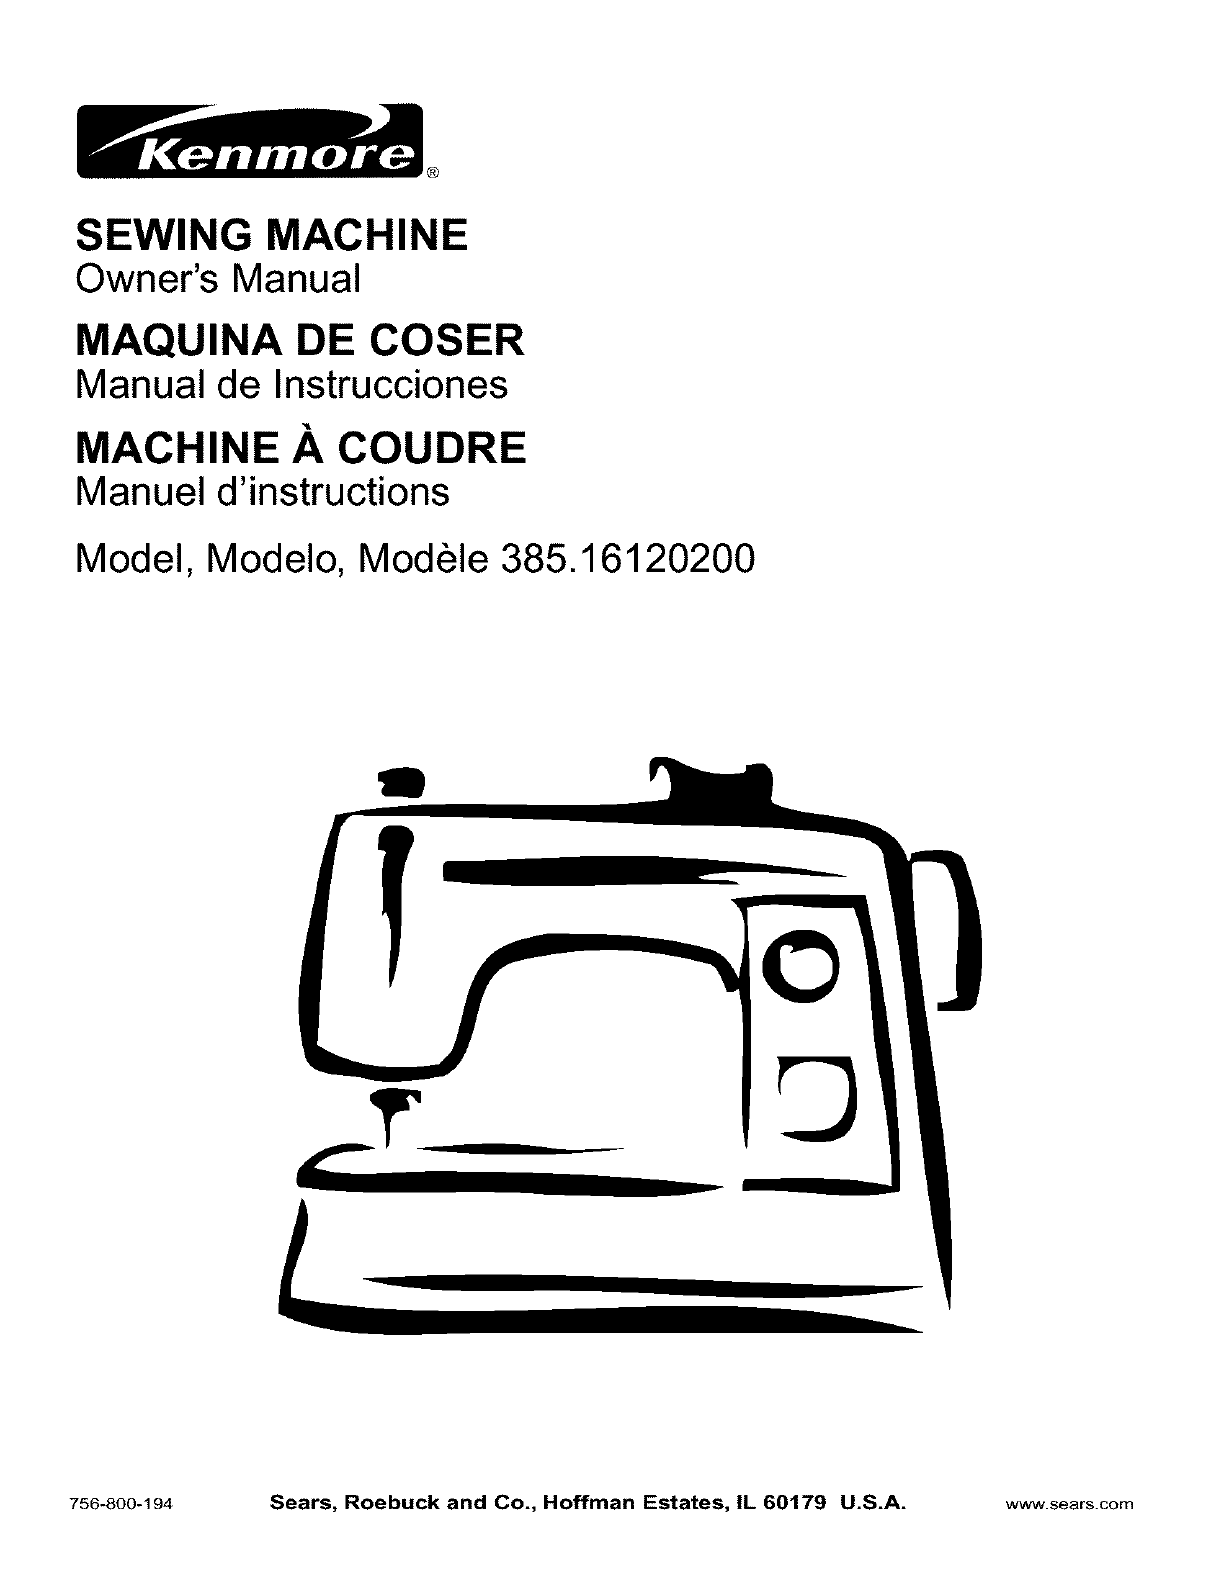 kenmore sewing machine 385 16120200 user guide manualsonline com rh fitness manualsonline com kenmore sewing machine owner manual model 385 kenmore sewing machine user manual